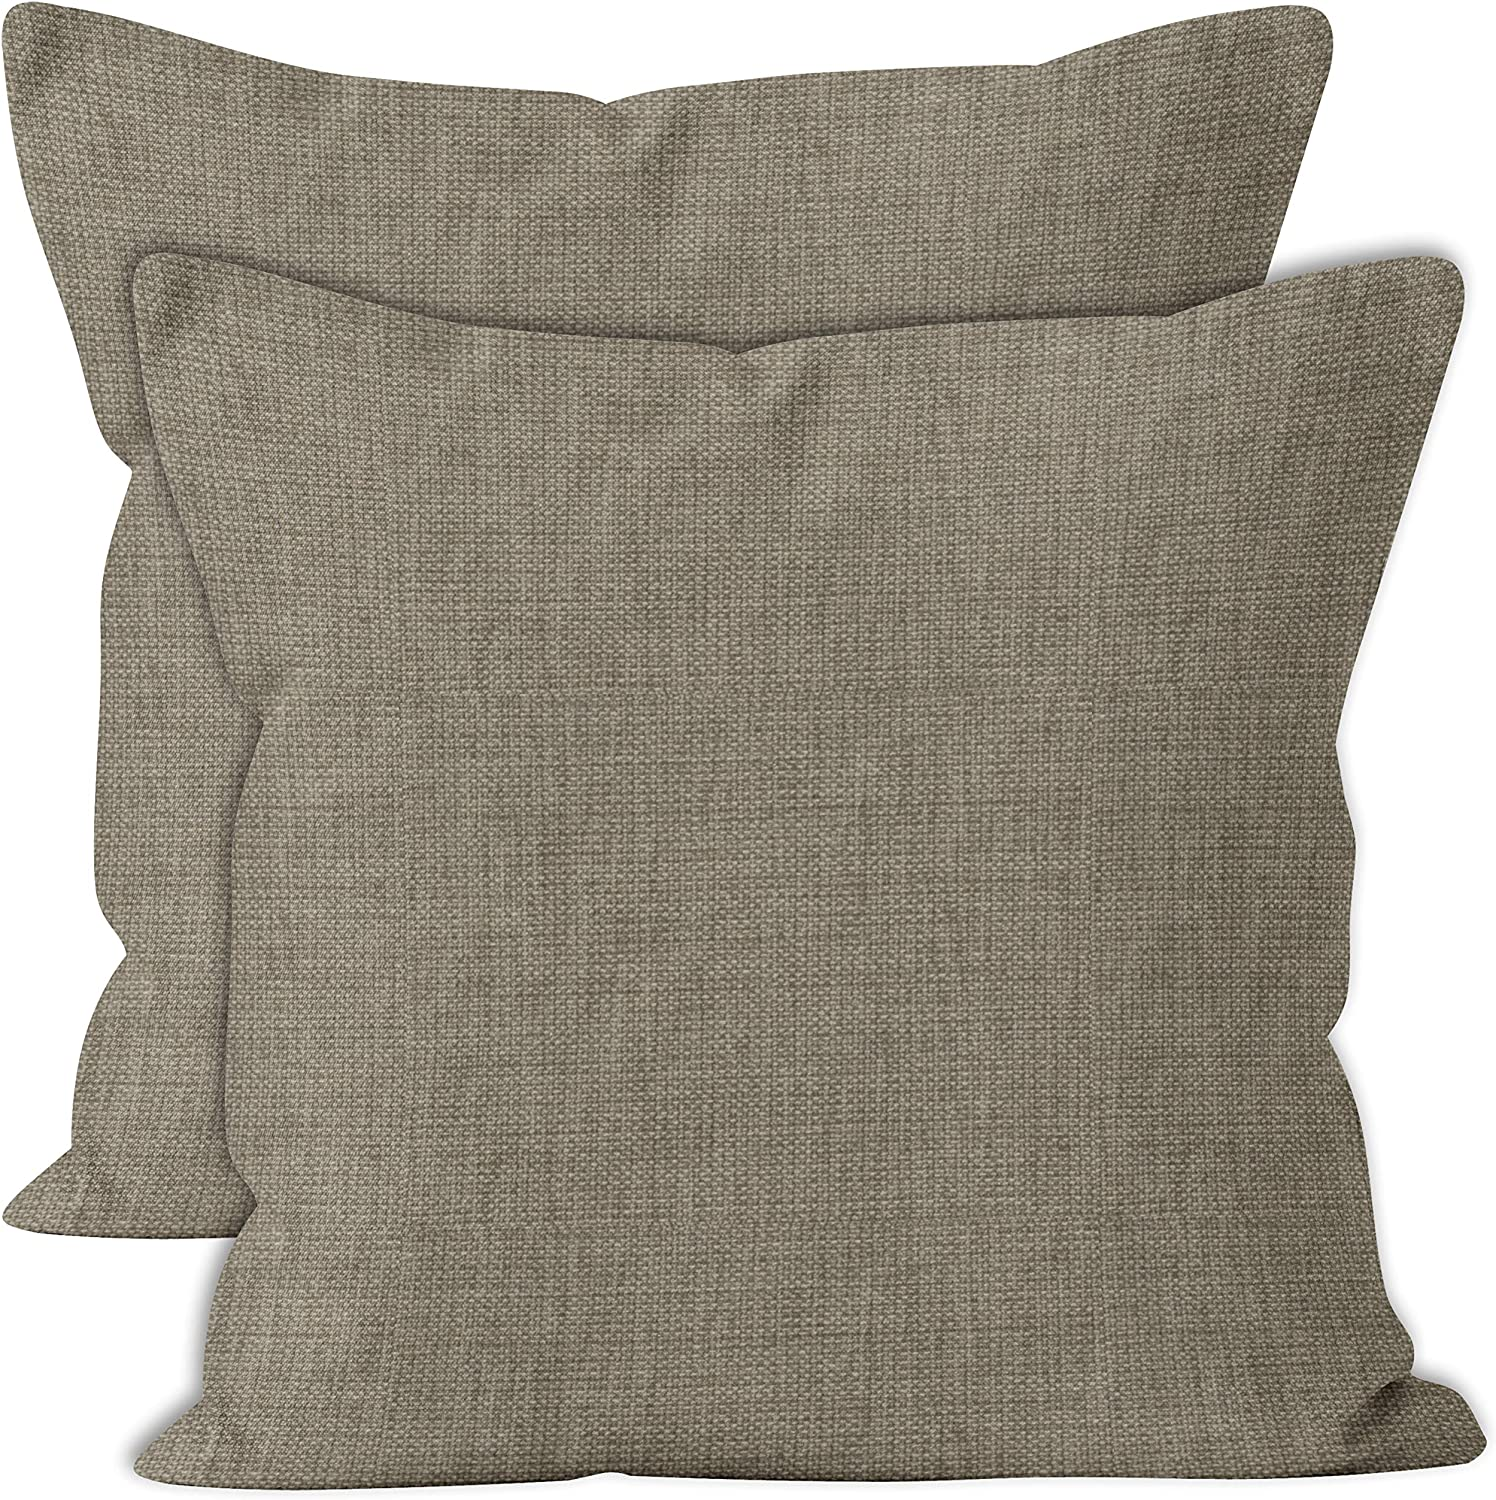 Encasa Homes Chenille Throw Pillow New Shipping Free Covers Solid 2 Set pcs - Max 69% OFF Ligh